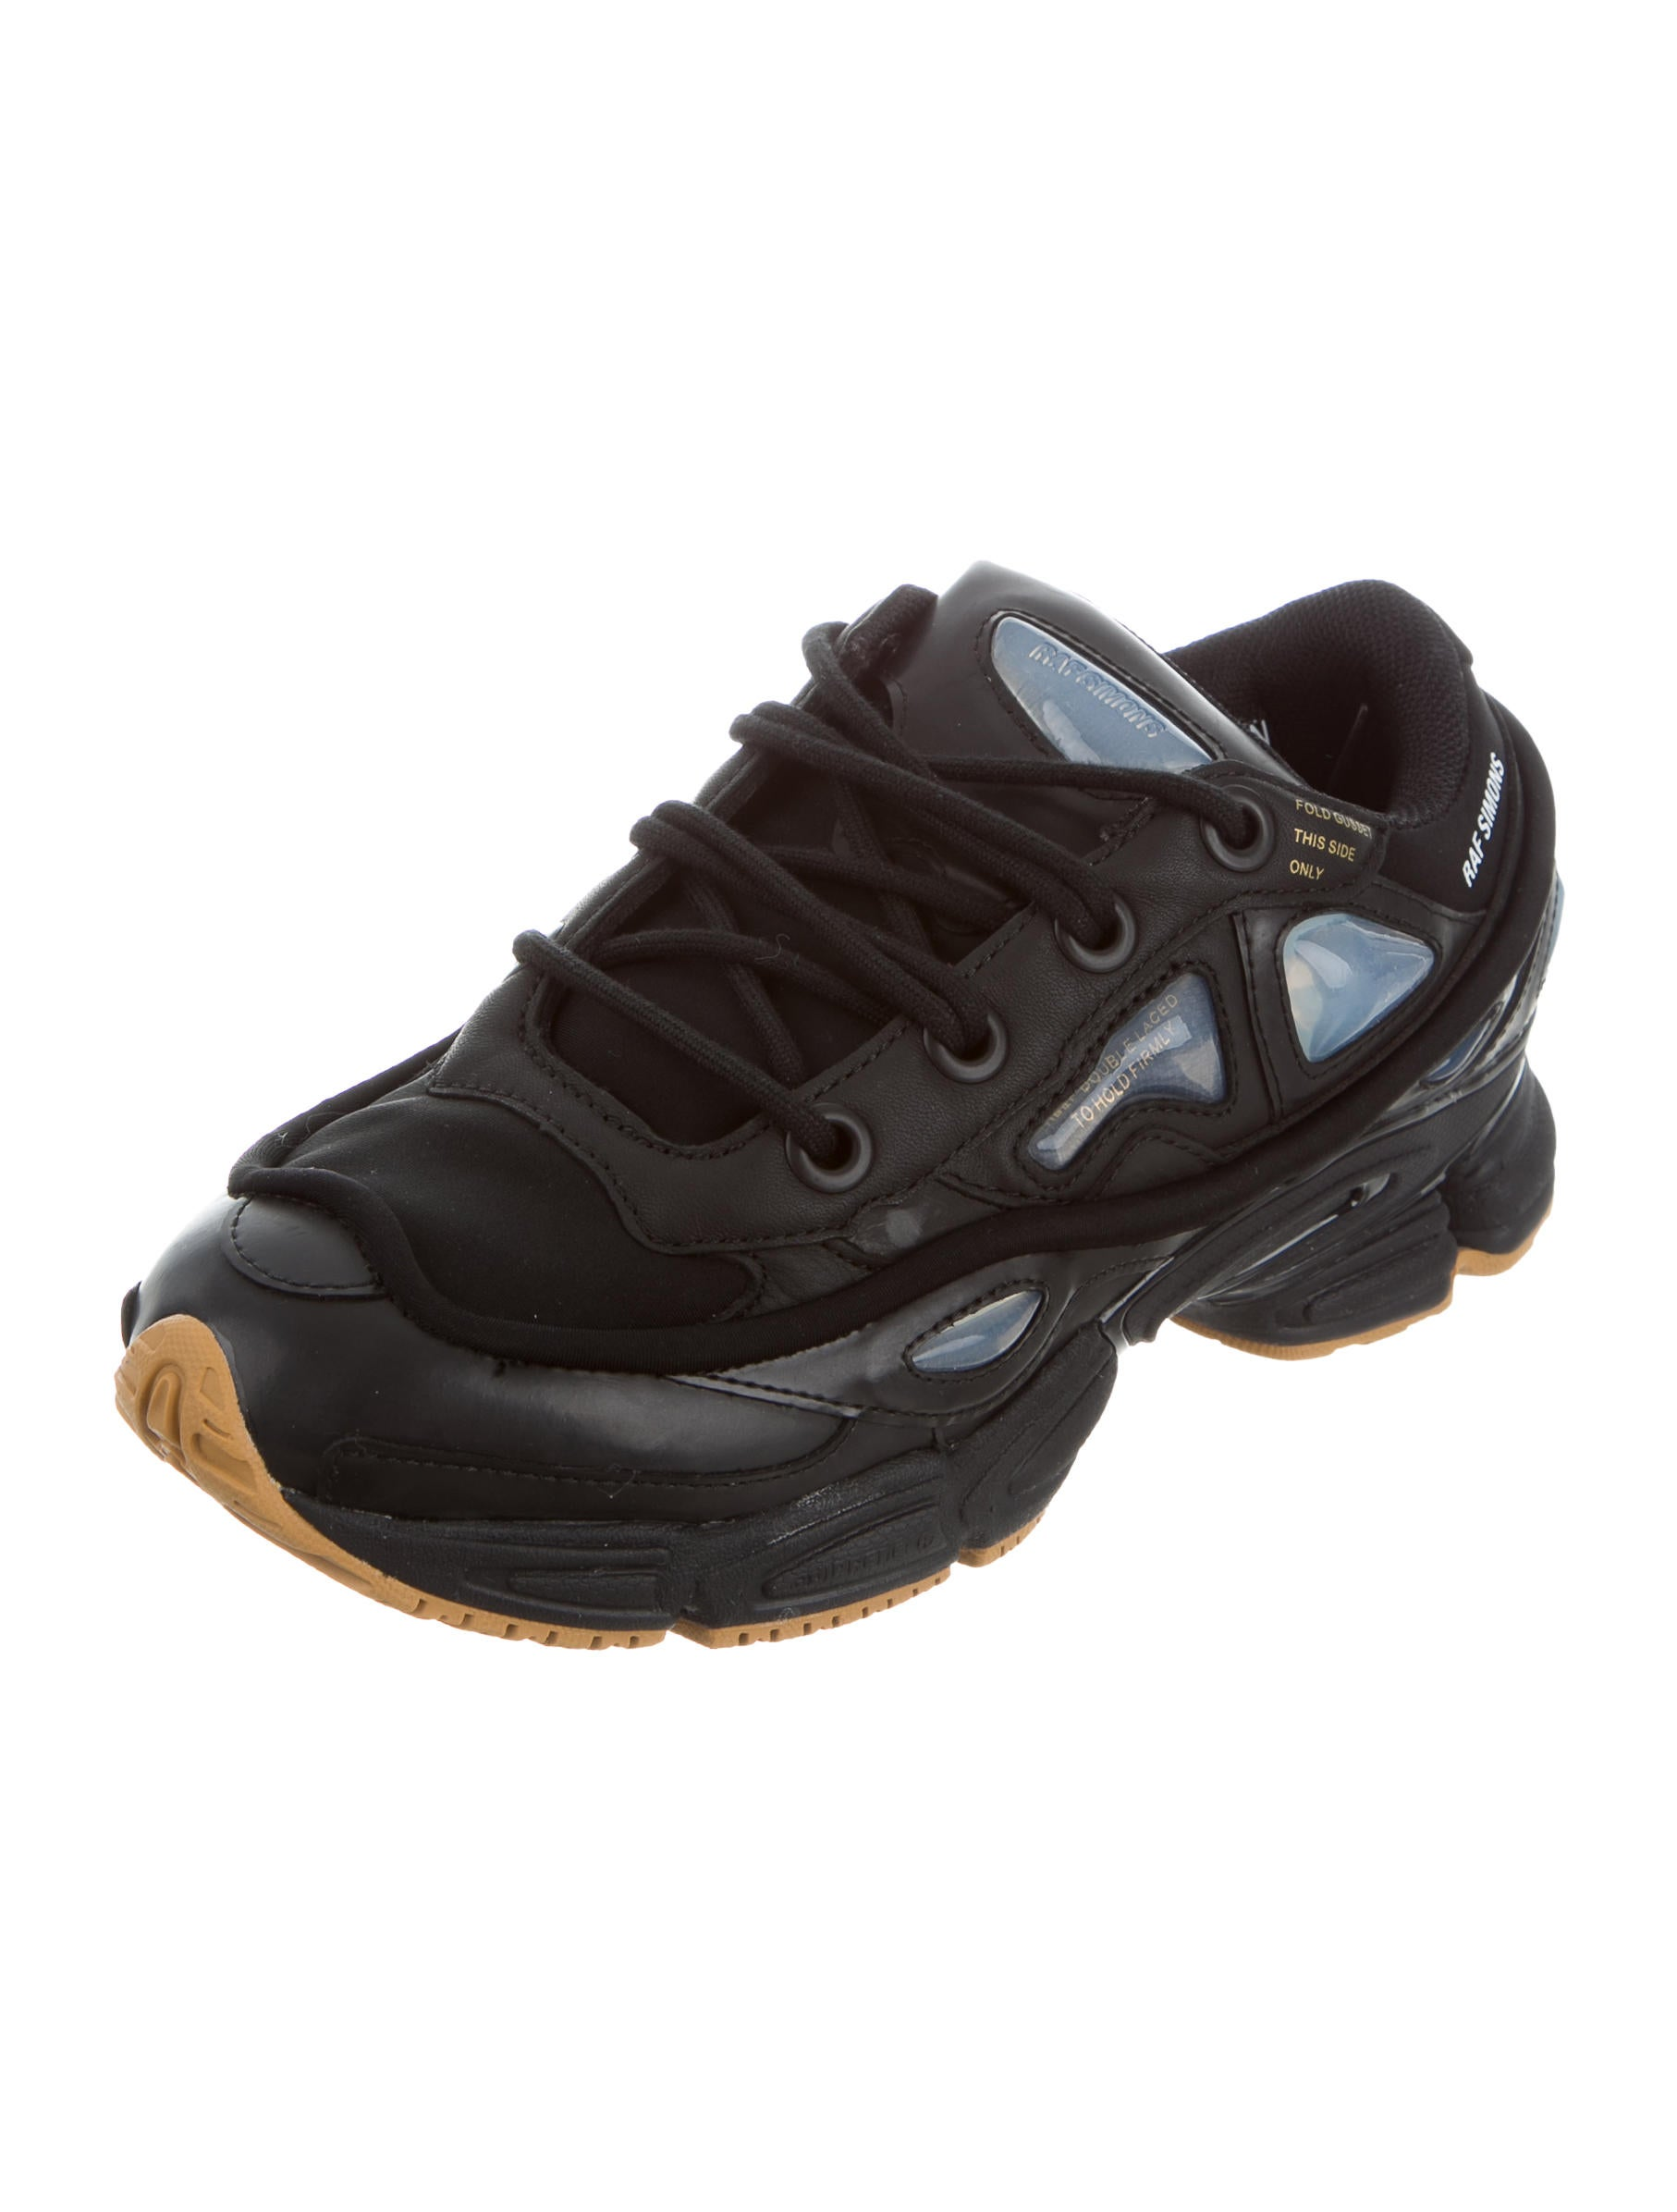 raf simons x adidas ozweego leather sneakers shoes. Black Bedroom Furniture Sets. Home Design Ideas